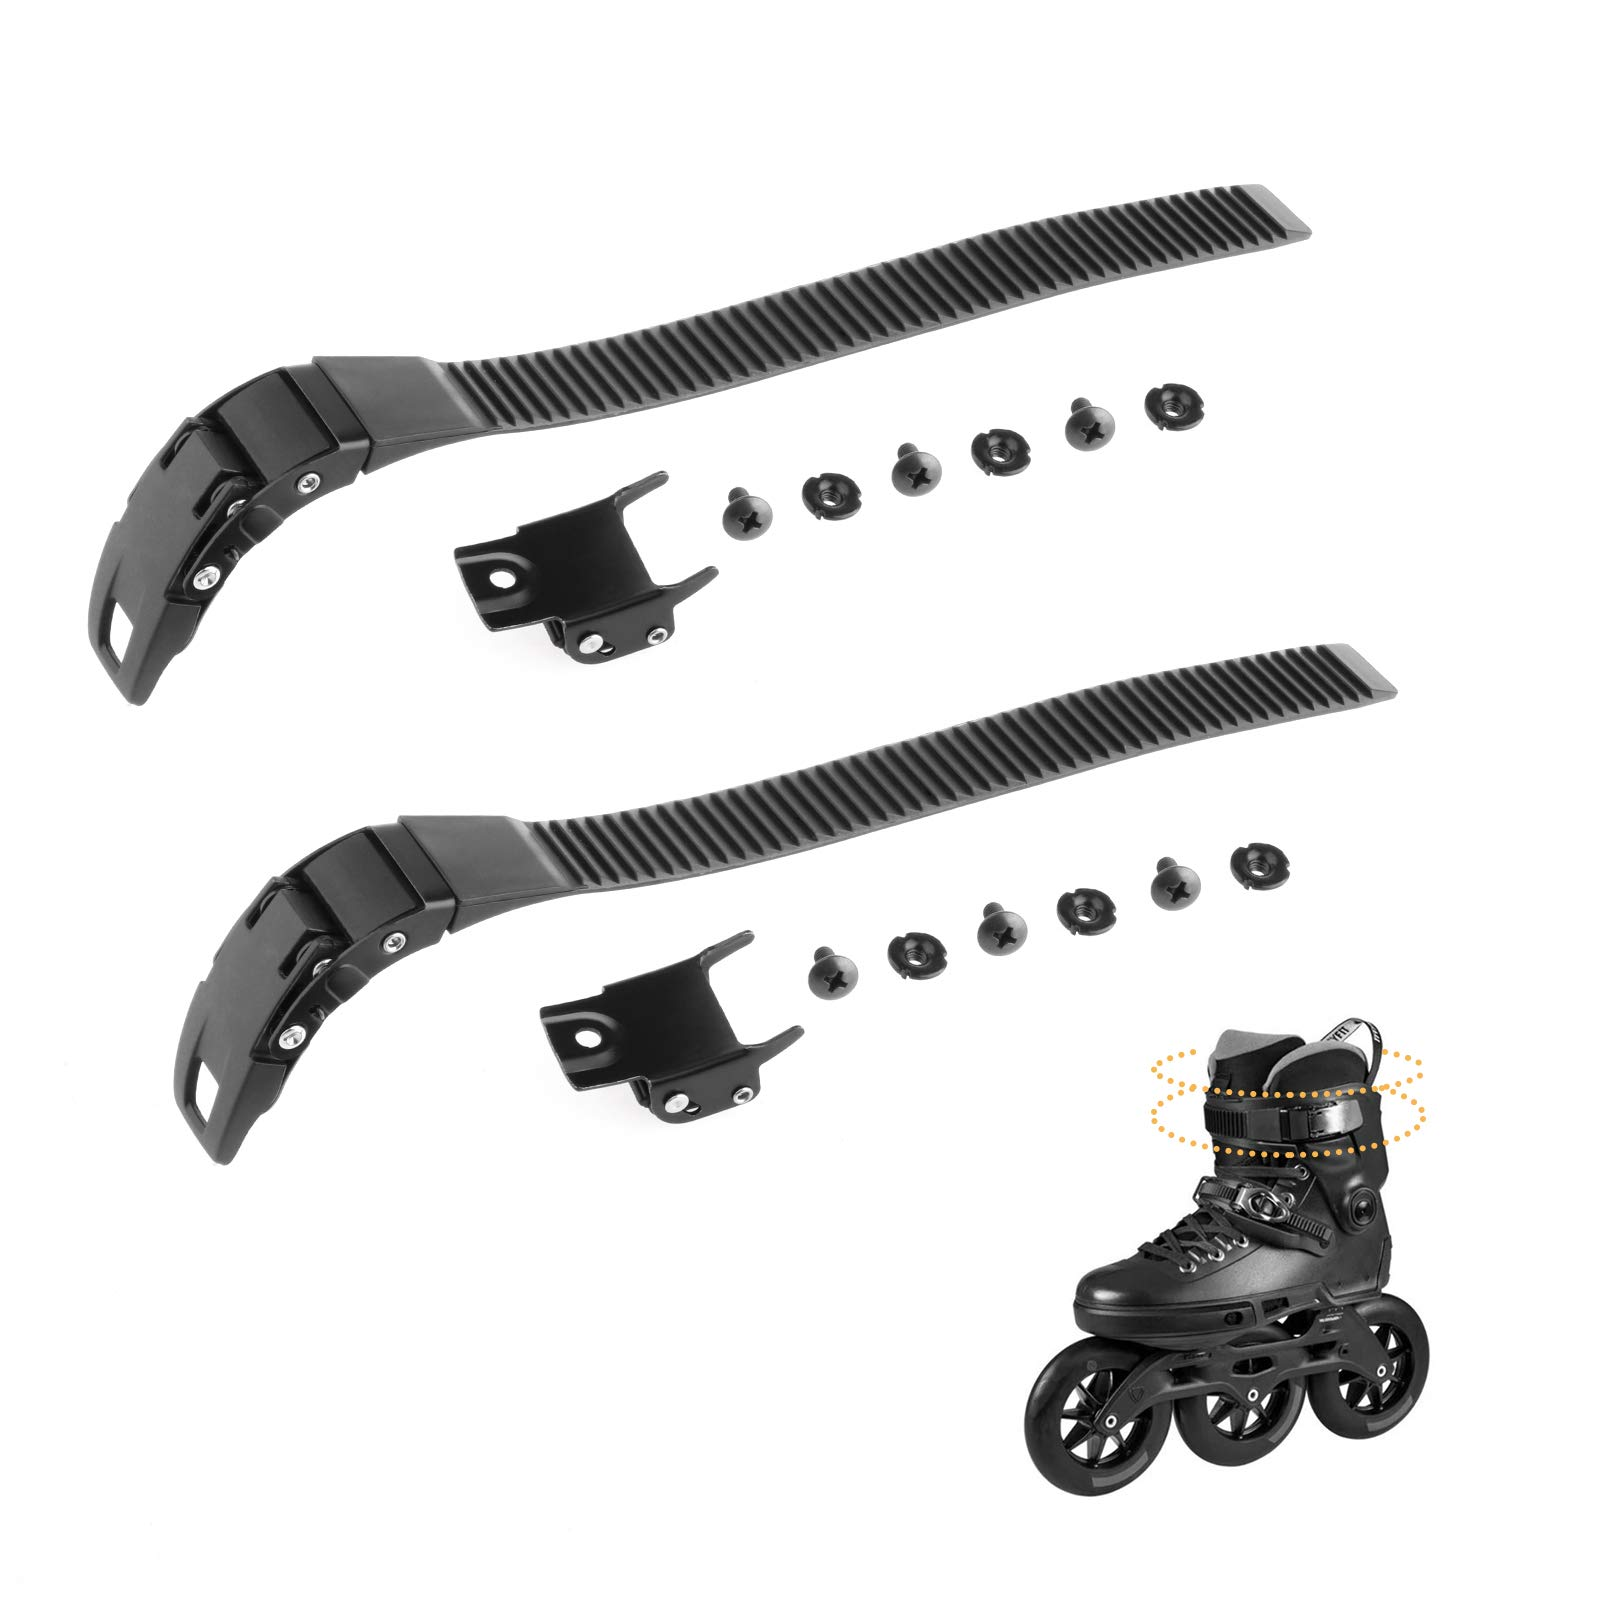 LIOOBO 2 Set Replacements Inline Roller Skating Shoes Strap with Screws Nuts Skates Buckles Accessory